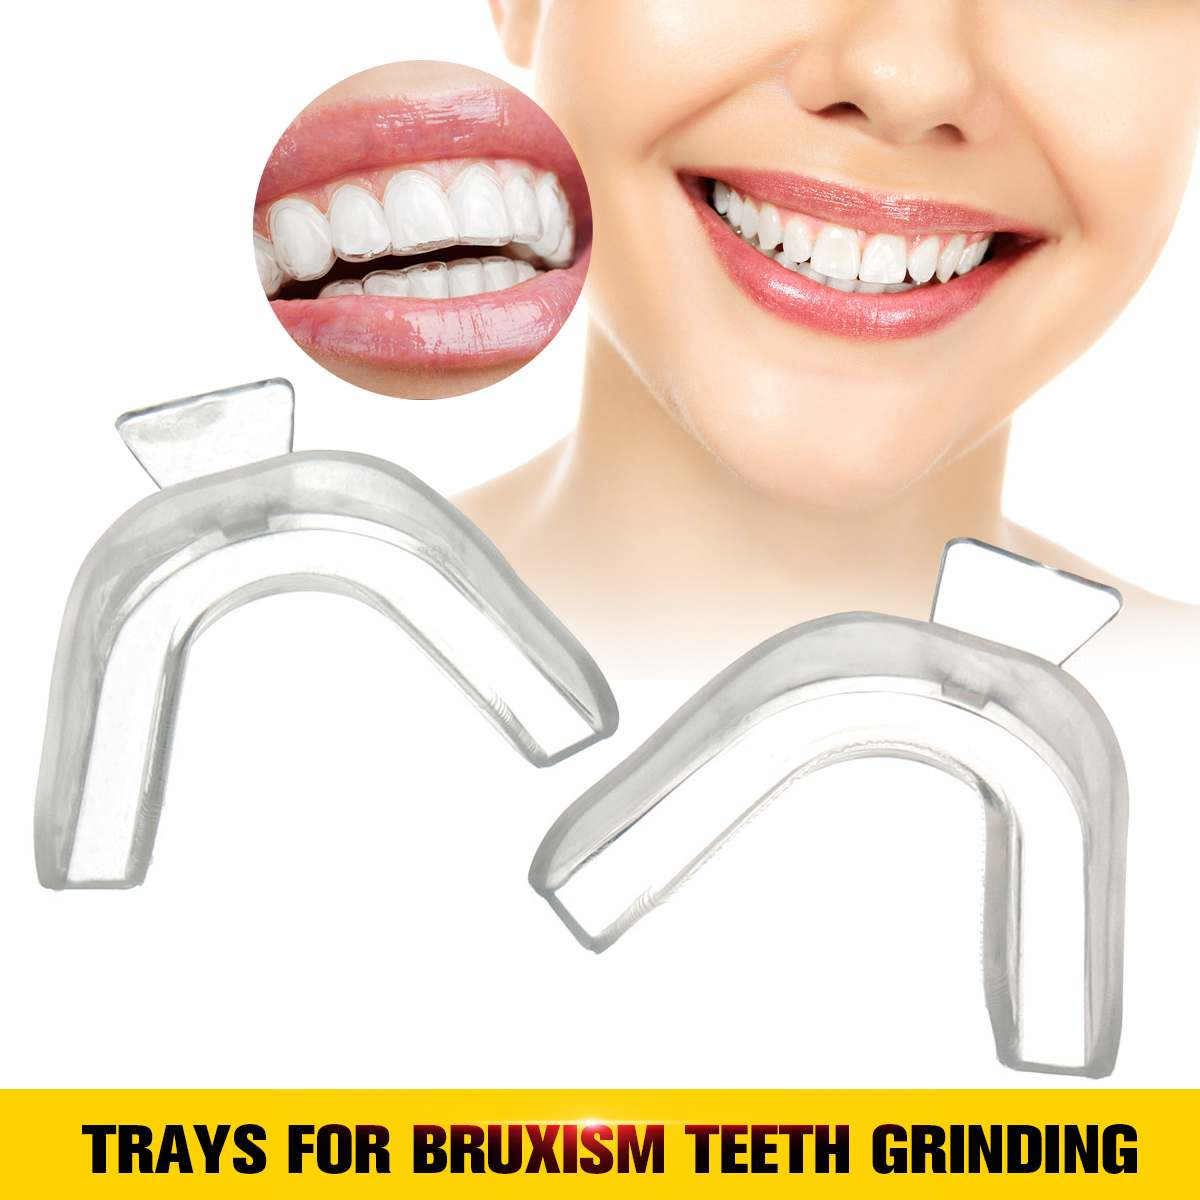 Gum Shield Double Mouth Guard Teeth Protector Adults TRANPARENT